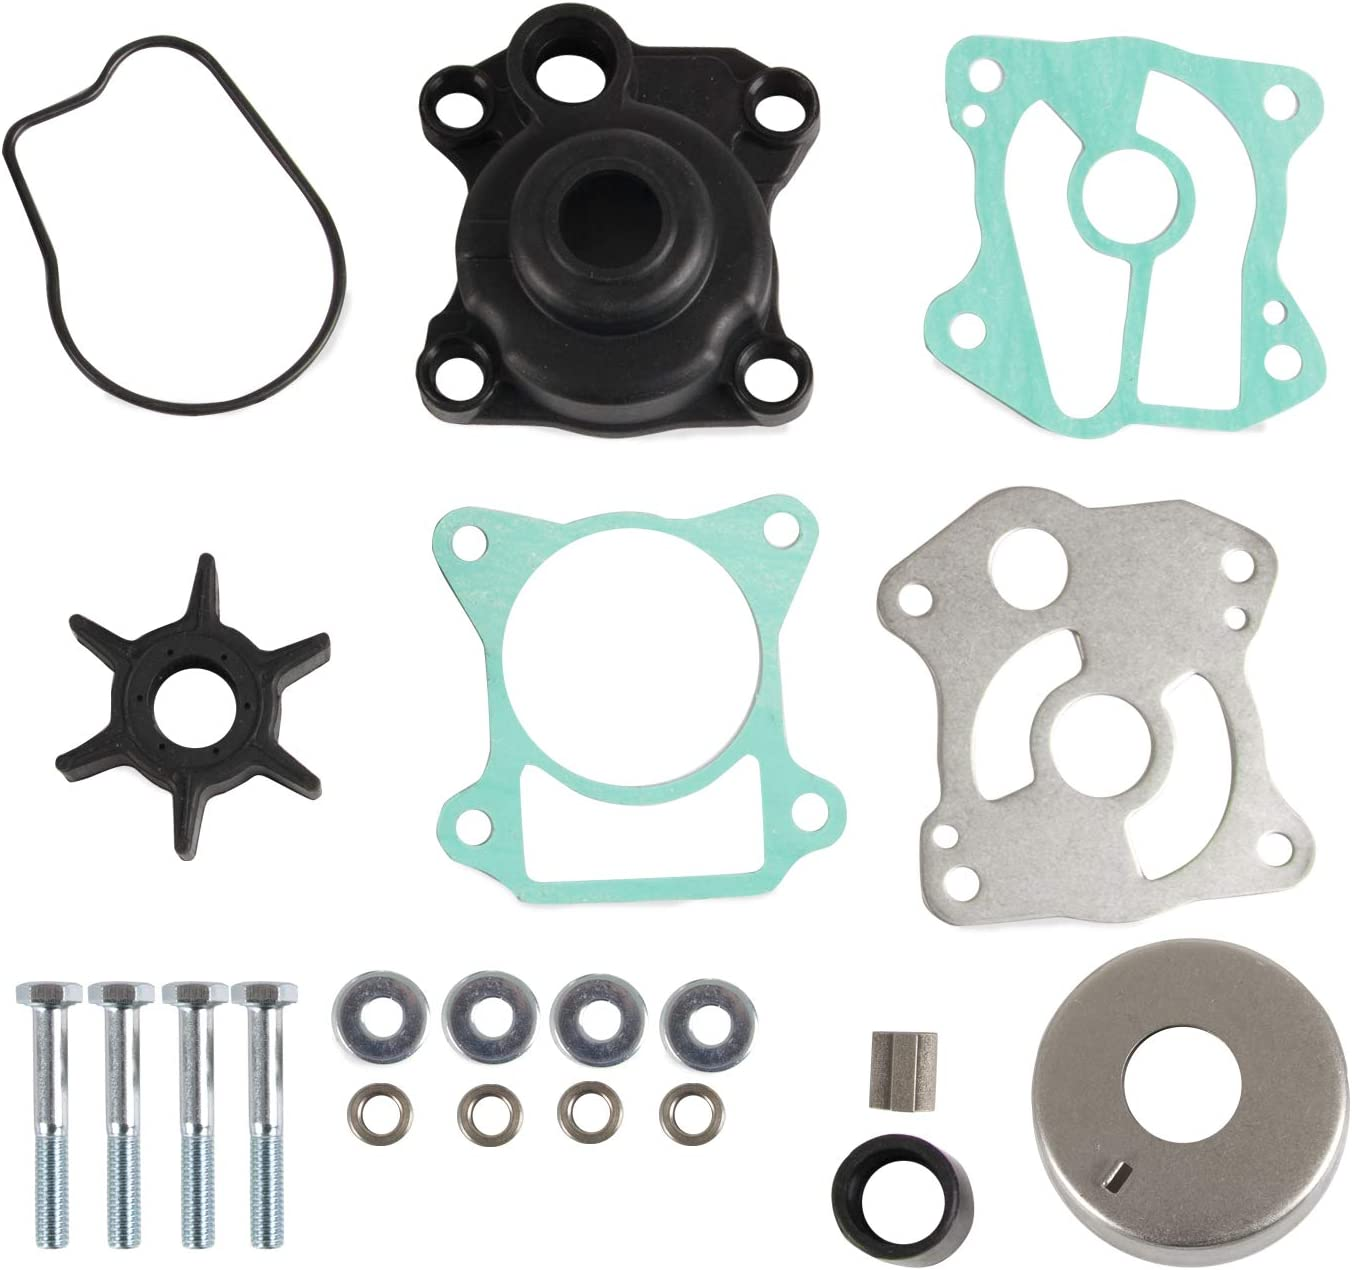 Replace 06193-ZV5-020 Water Pump Kit with Impeller Housing Compatible with HONDA Outboards BF35A BF40A BF40D BF45A BF50A BF50D (06193-ZV5-020)